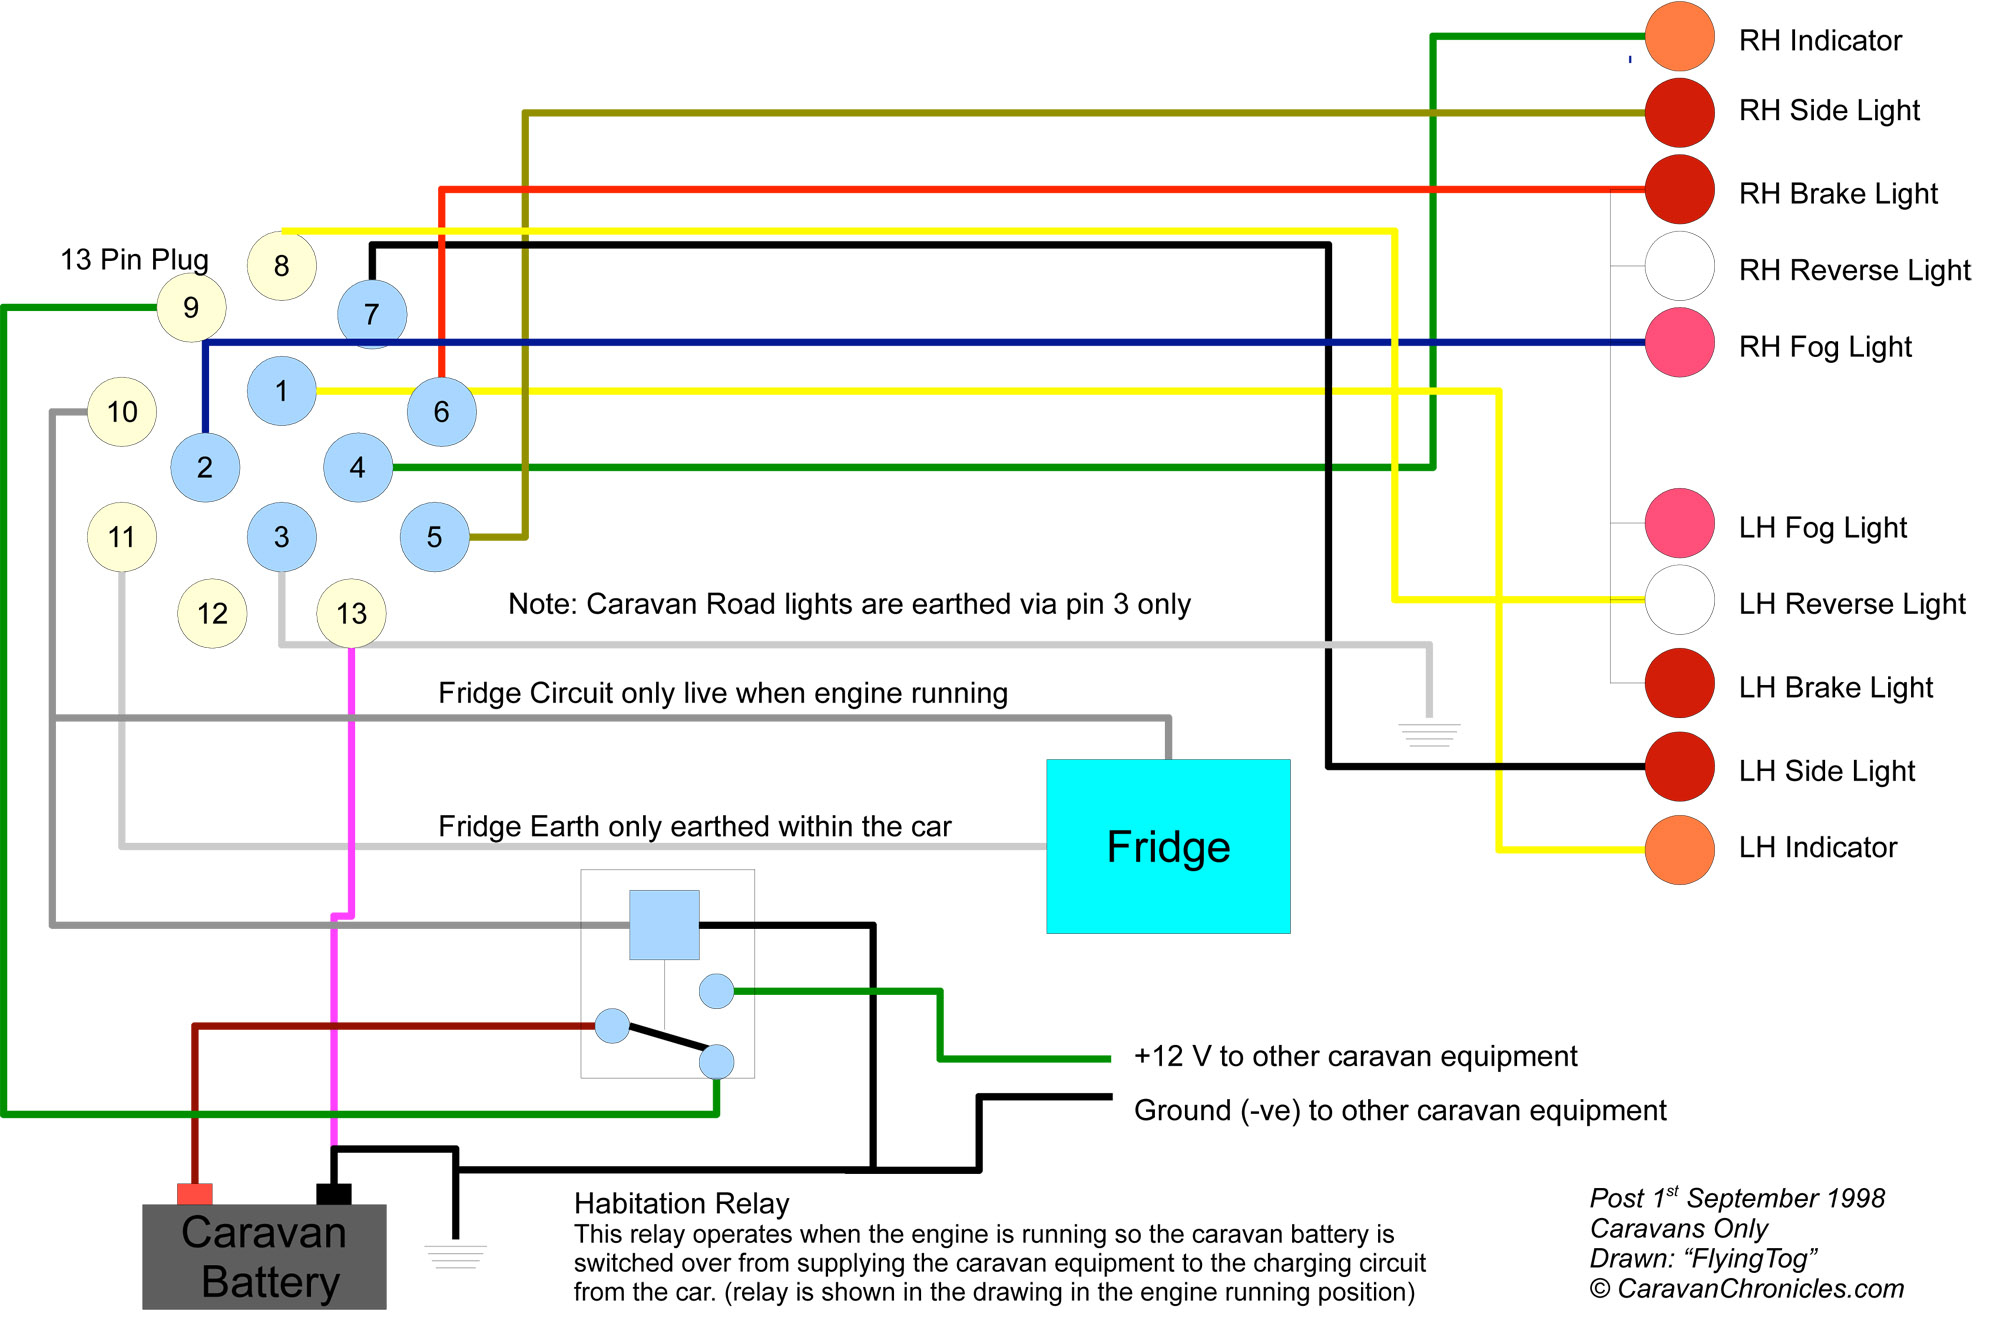 Ryder Utility Trailer Lights Wiring Diagram | Wiring Library - Triton Xt Trailer Wiring Diagram